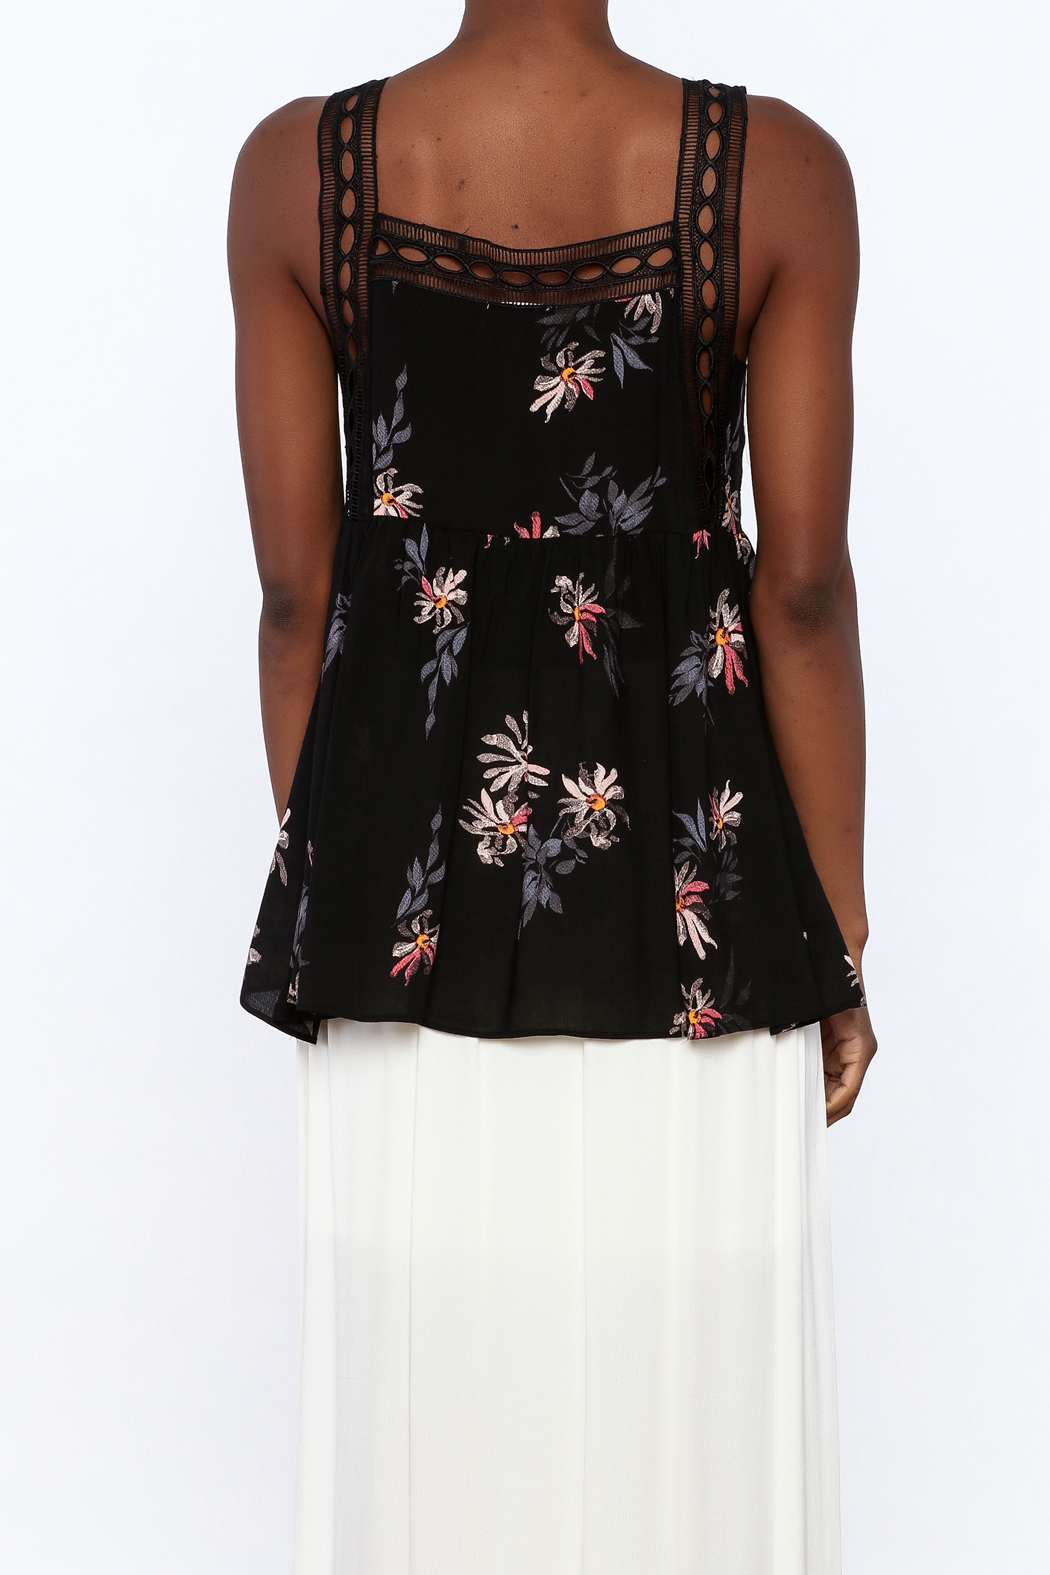 Gentle Fawn Black Floral Sleeveless Blouse - Back Cropped Image